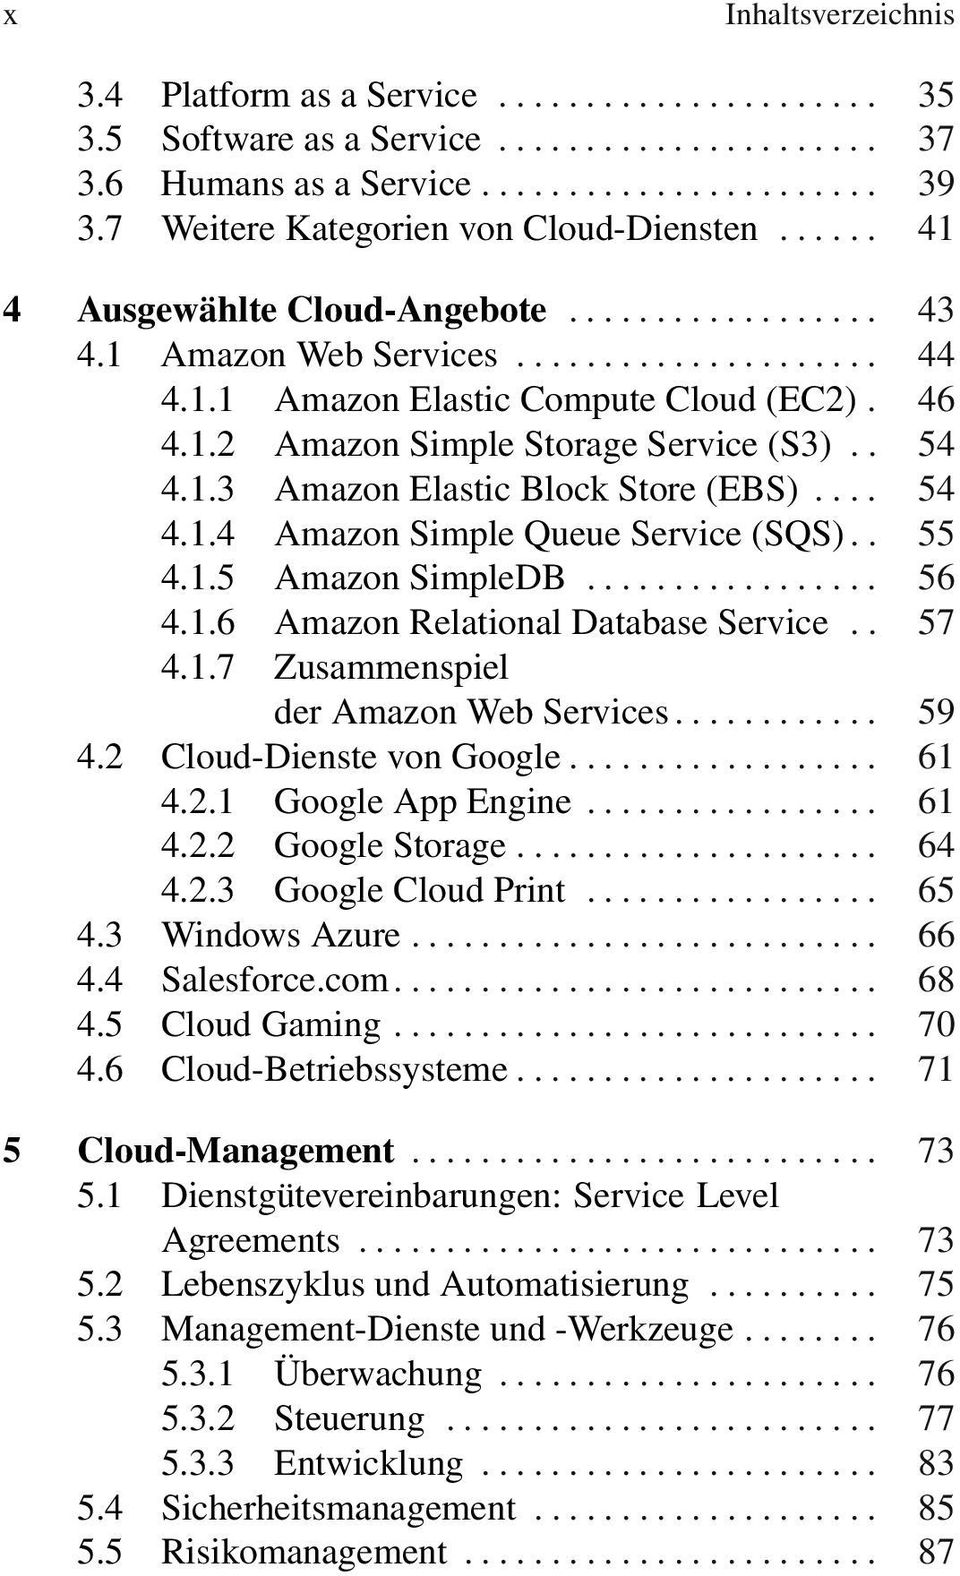 . 55 4.1.5 Amazon SimpleDB... 56 4.1.6 Amazon Relational Database Service.. 57 4.1.7 Zusammenspiel der Amazon Web Services... 59 4.2 Cloud-Dienste von Google... 61 4.2.1 Google App Engine... 61 4.2.2 Google Storage.